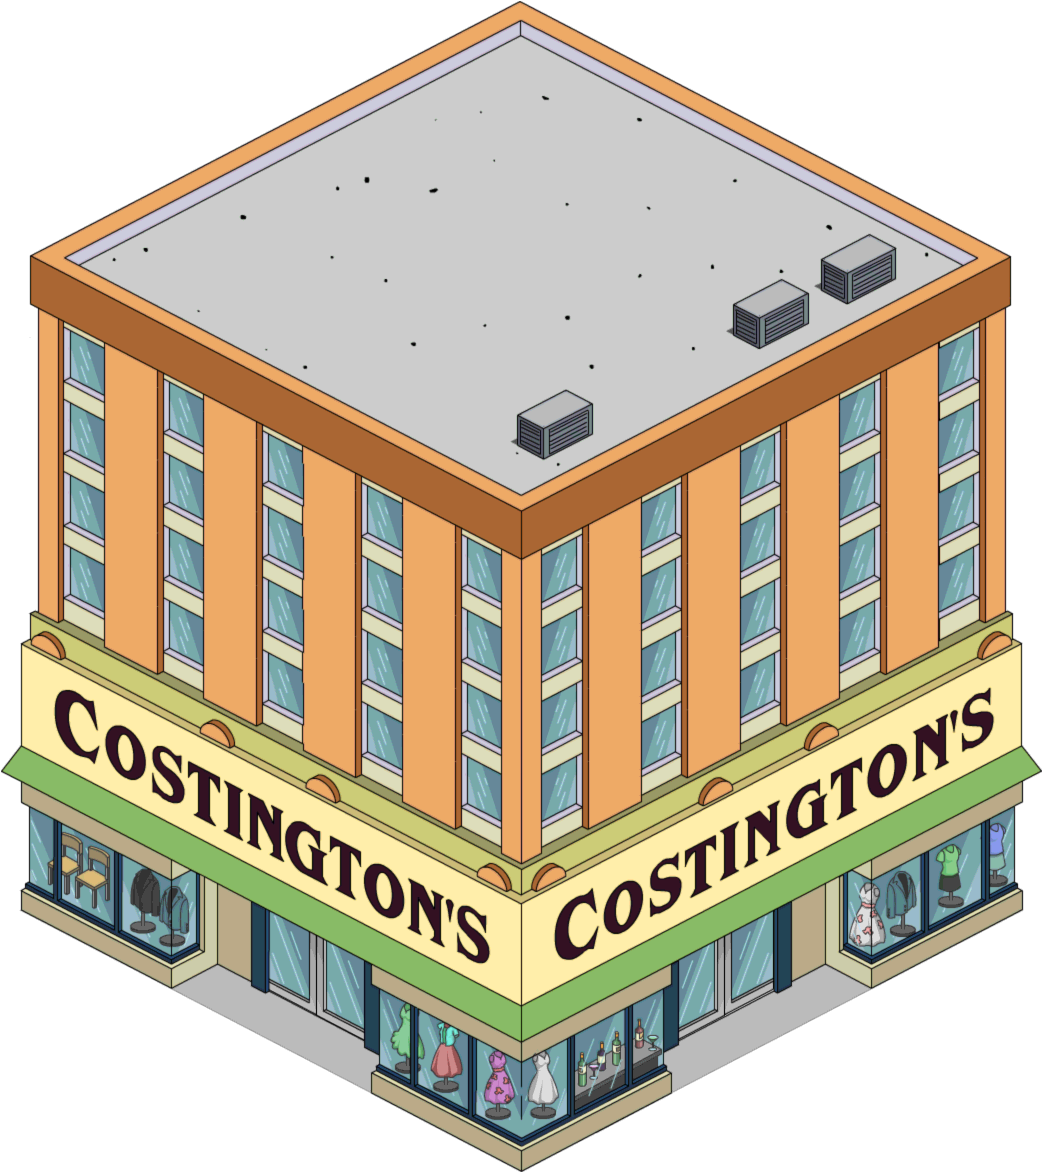 Tapped Out Costingtons.png